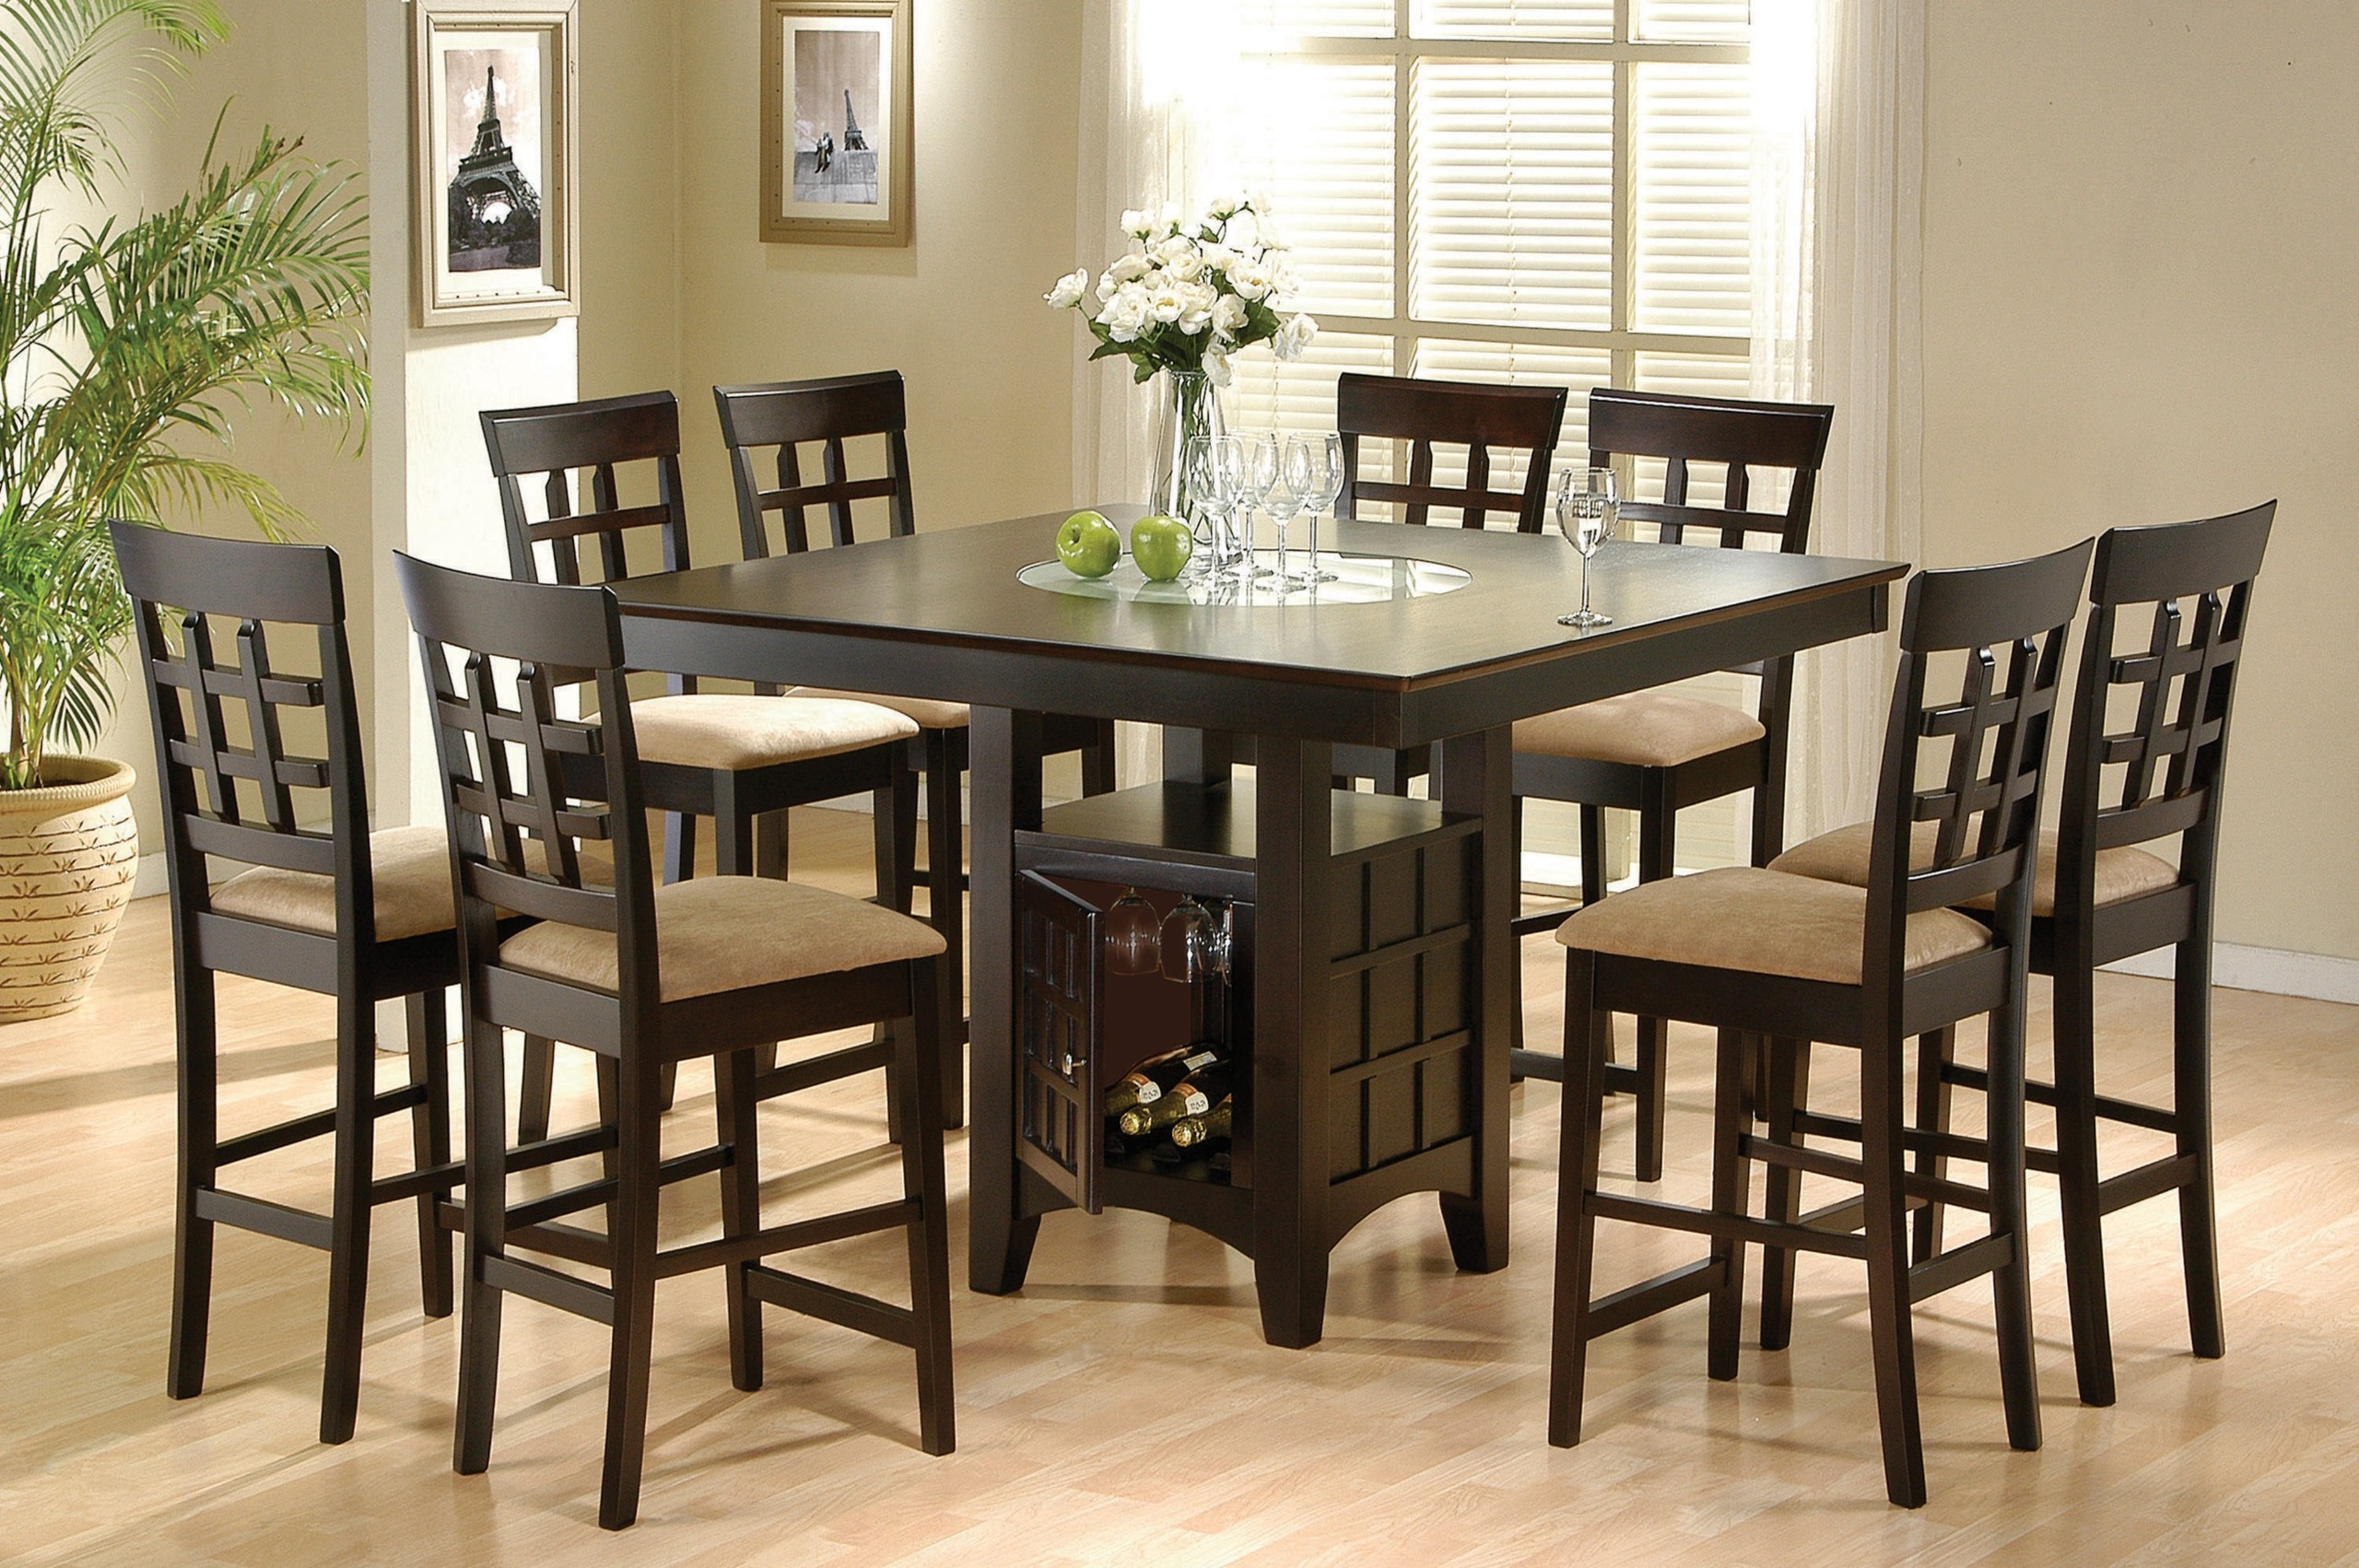 round formal dining table for 8